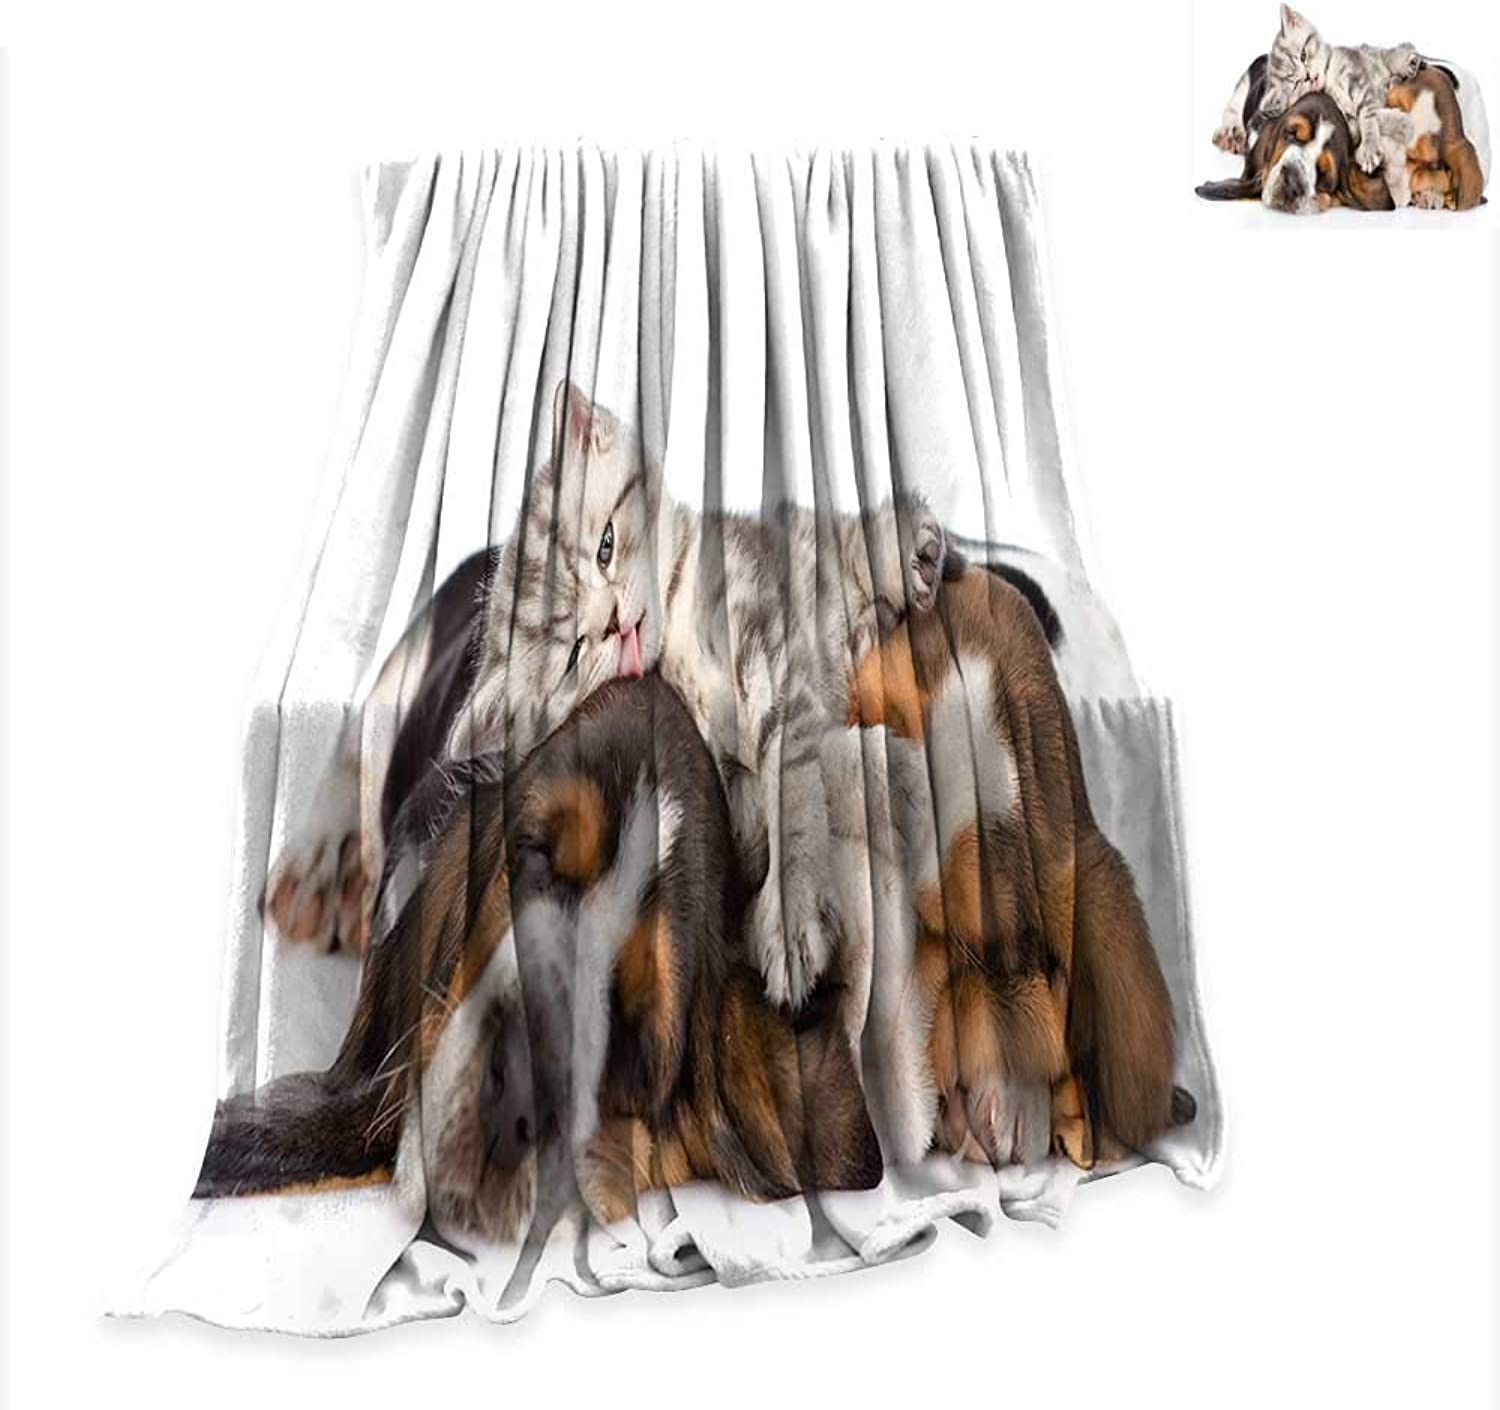 RenteriaDecor Blanket Funny,Newborn Kitten Lying on The Puppies Basset Hound and Licks Sleeping Cuddle Picture,Multicolor Digital Printing W51 x L60 inch